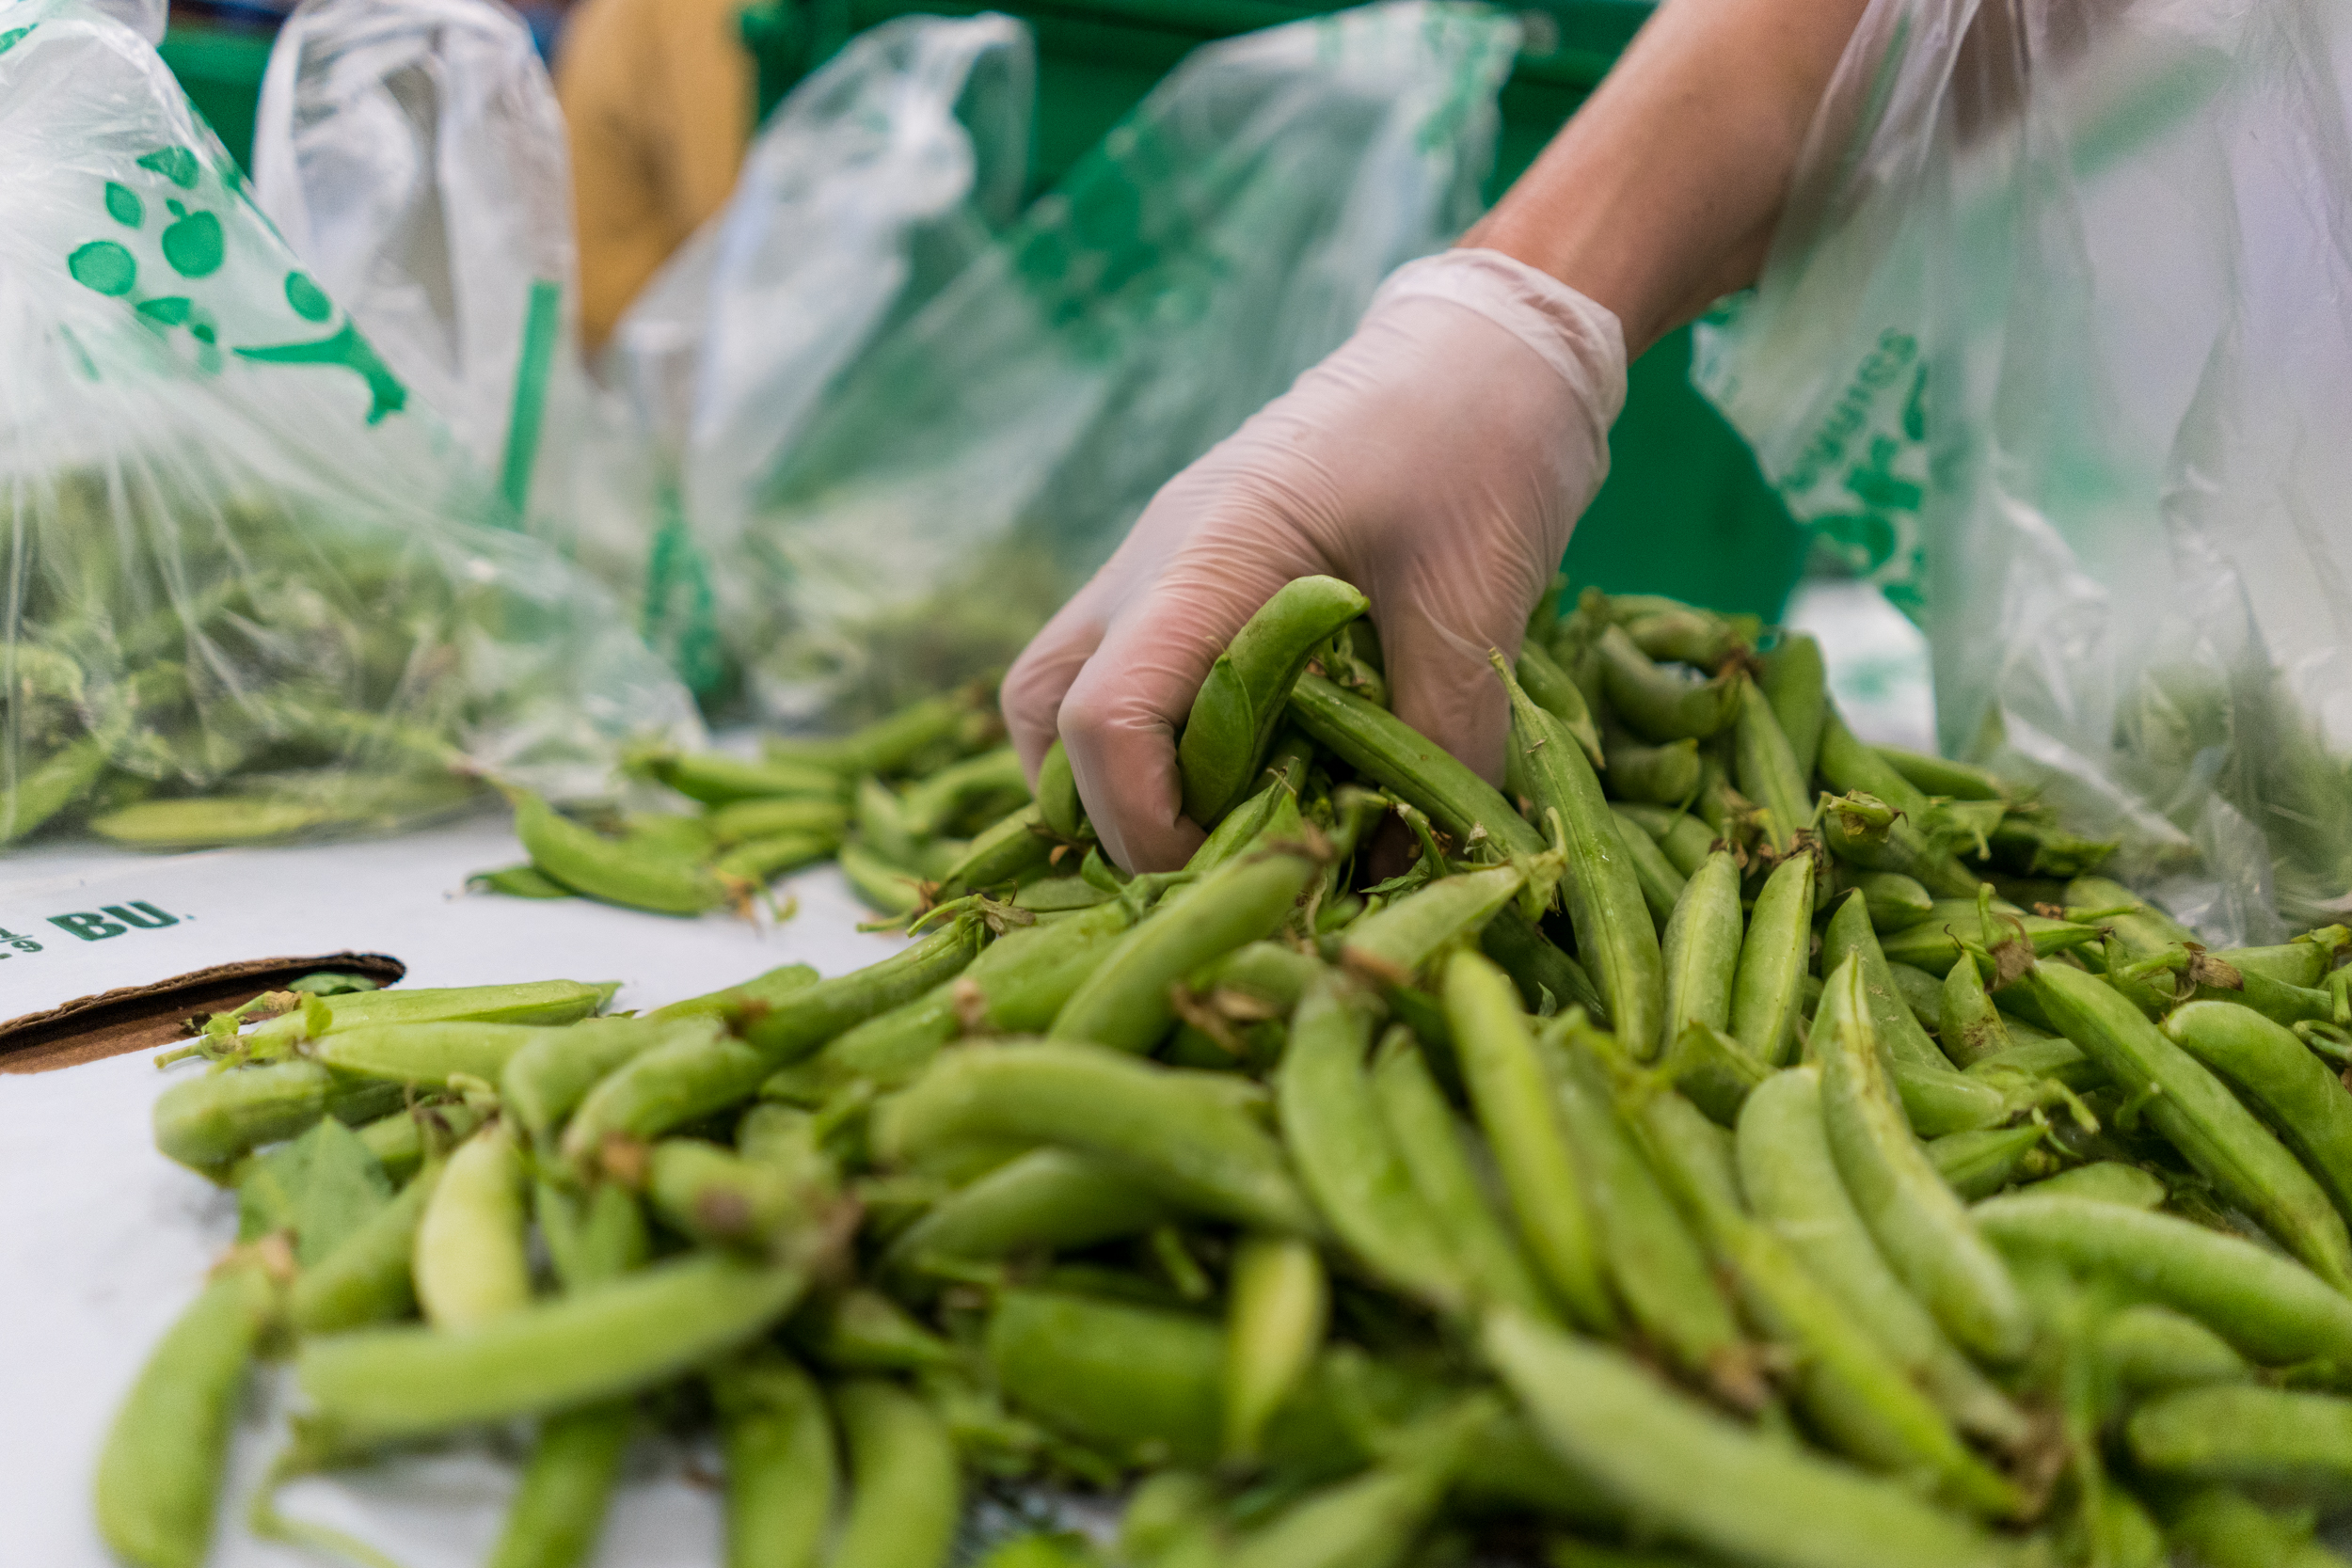 Snap peas at Good Acre // Photo by Tony Saunders